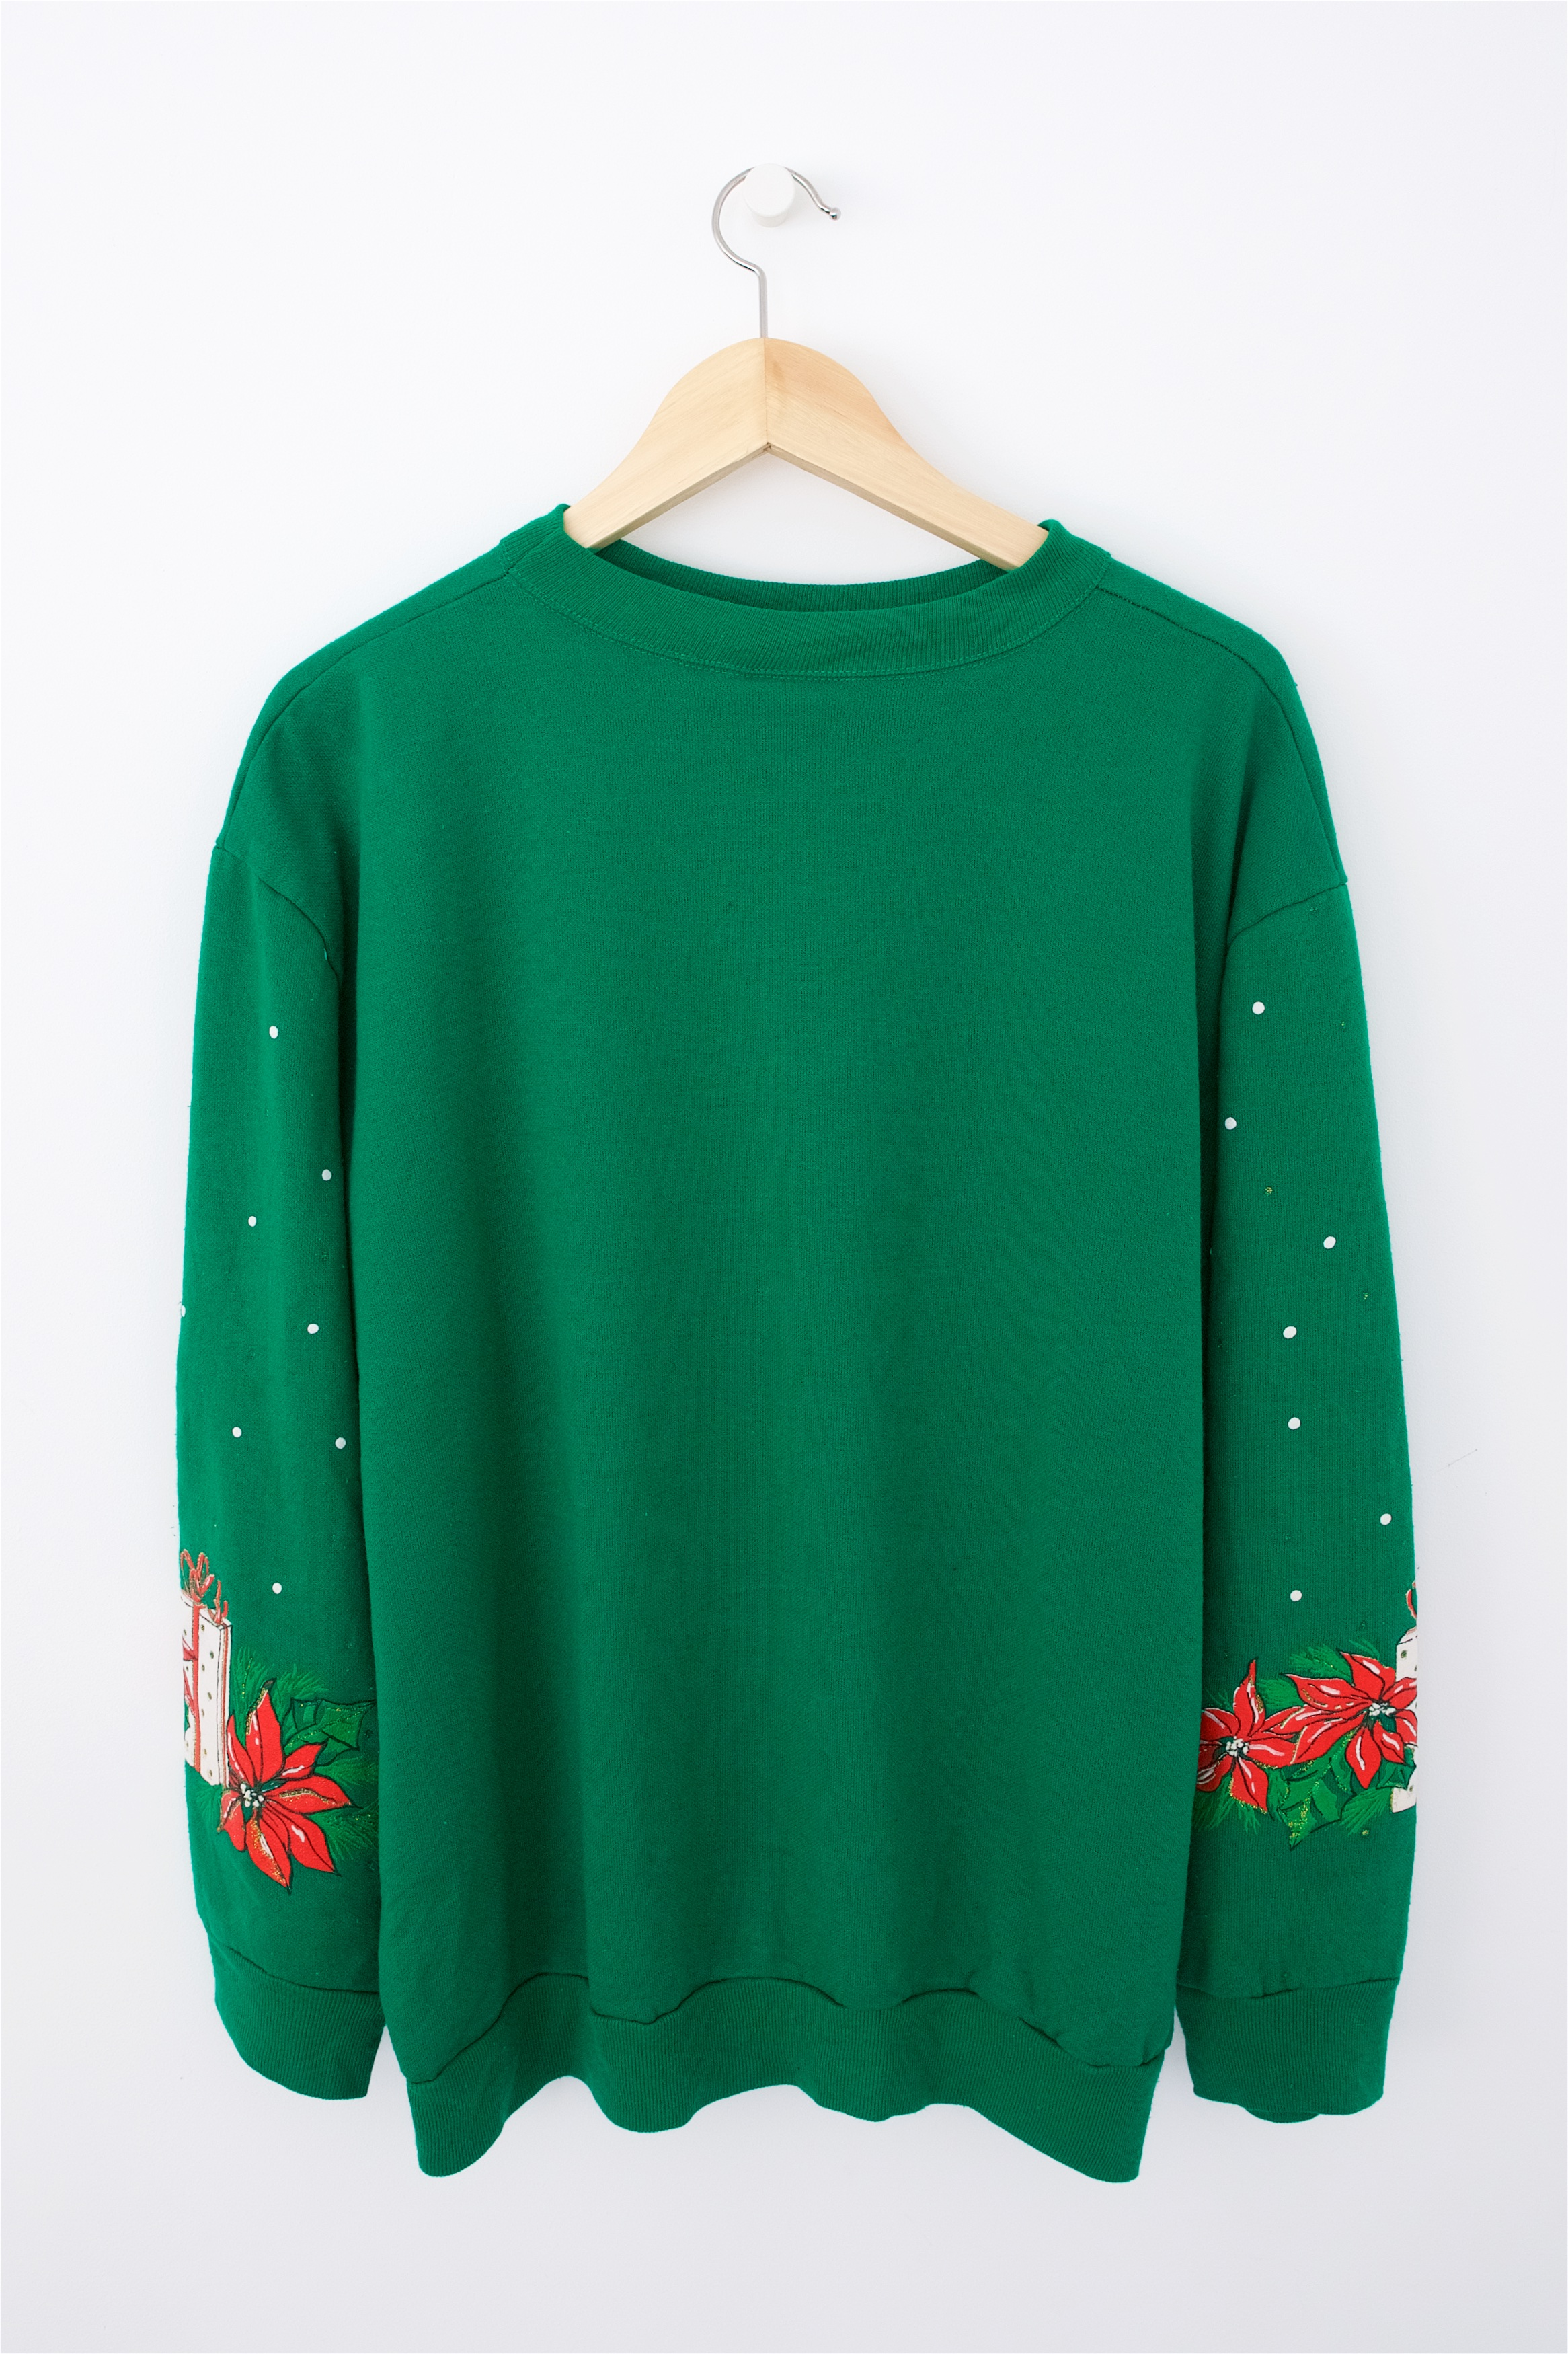 Green Day Christmas Sweater.Cats Baubles Christmas Sweatshirt